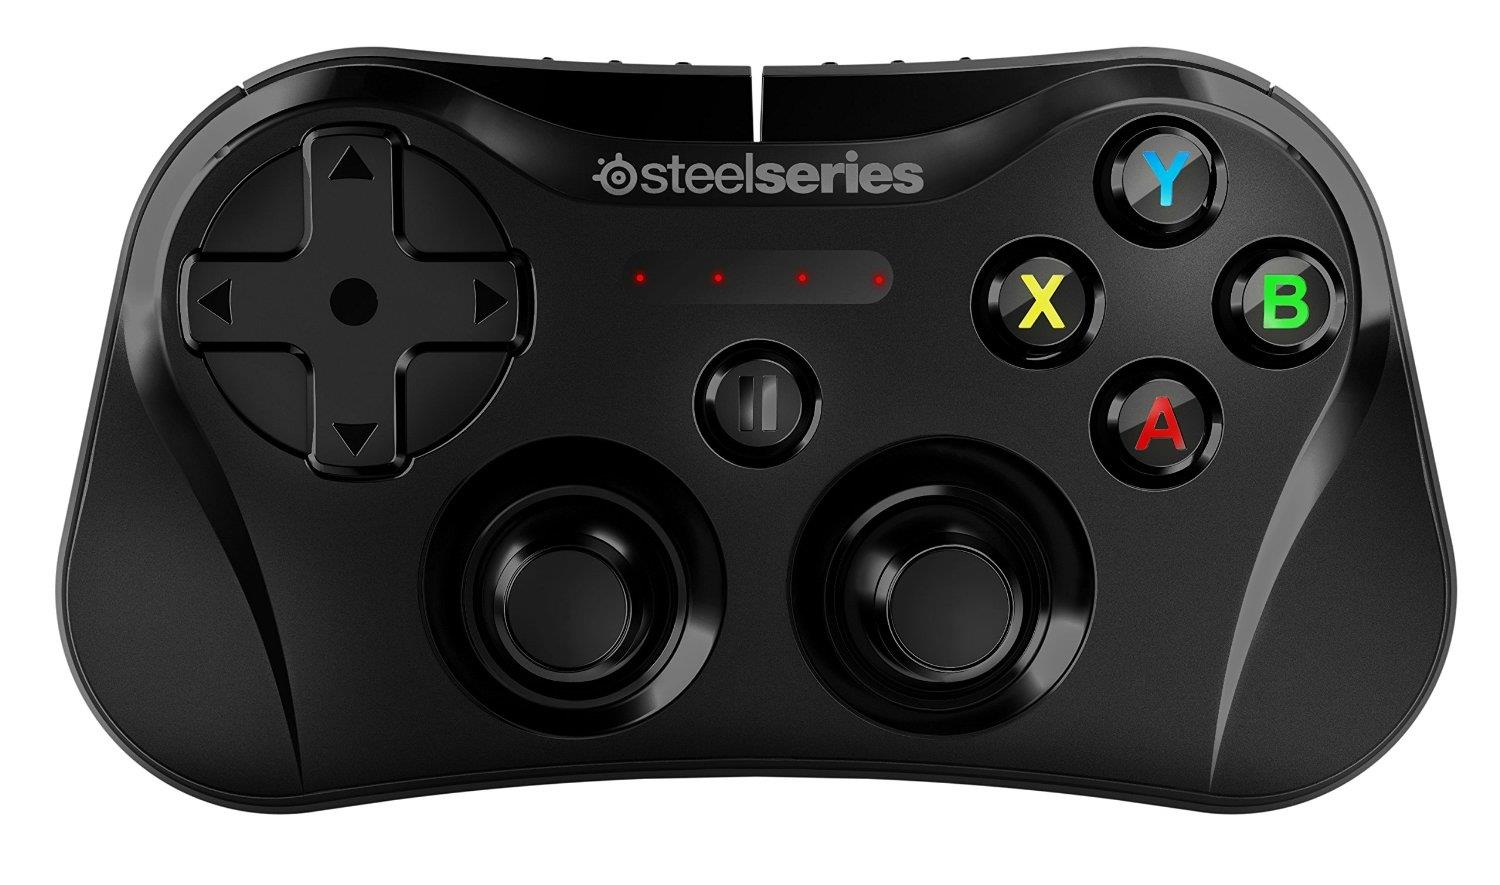 # SteelSeries STRATUS Wireless Gaming Controller - For iOSr 7 #